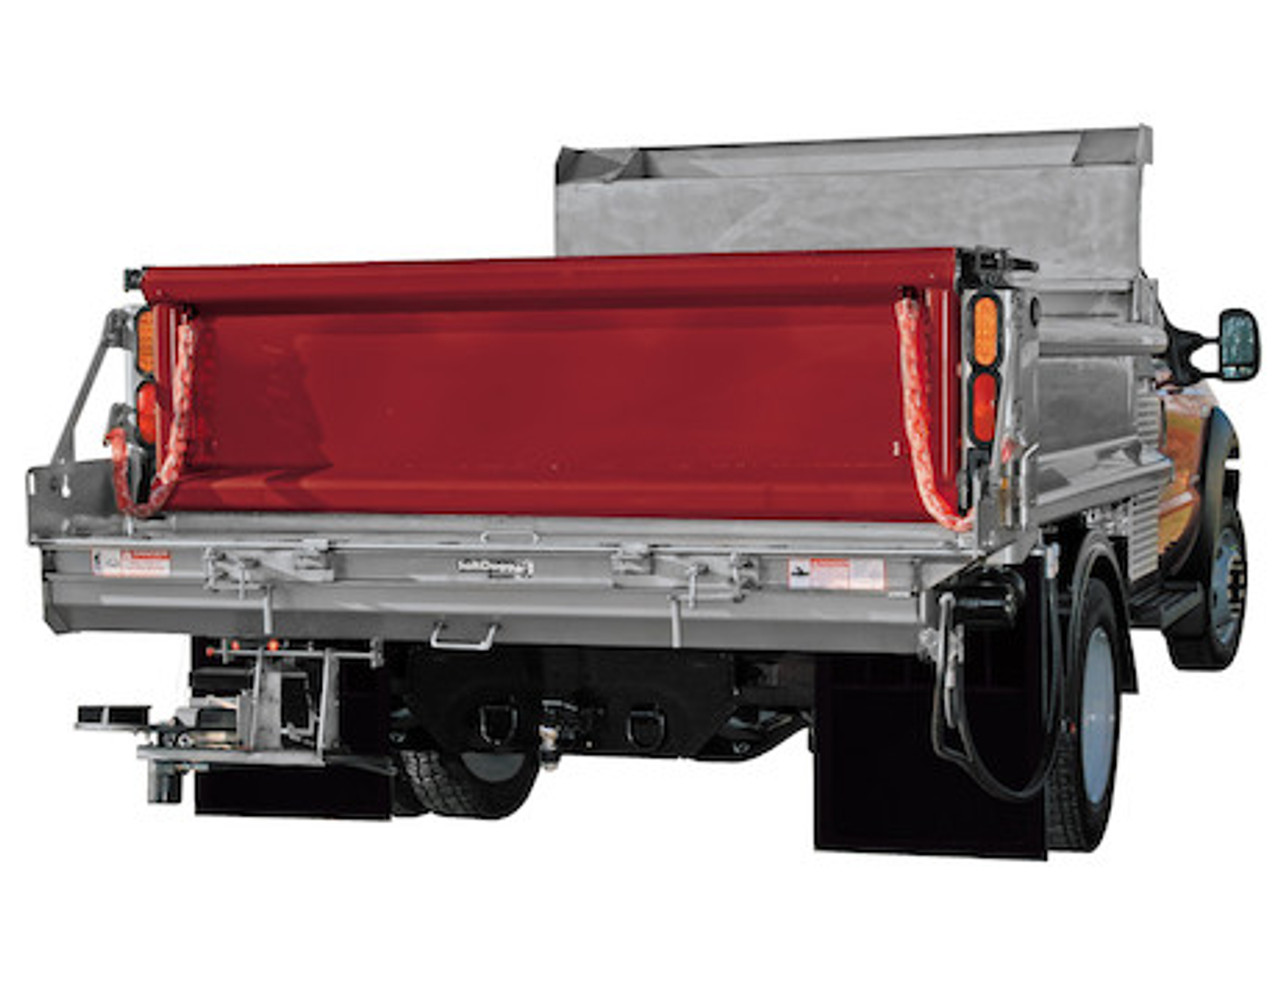 92430SSA BUYERS SALTDOGG HYDRAULIC UNDER TAILGATE STAINLESS STEEL SALT SPREADER WITH 5:1 RATIO GEAR BOX